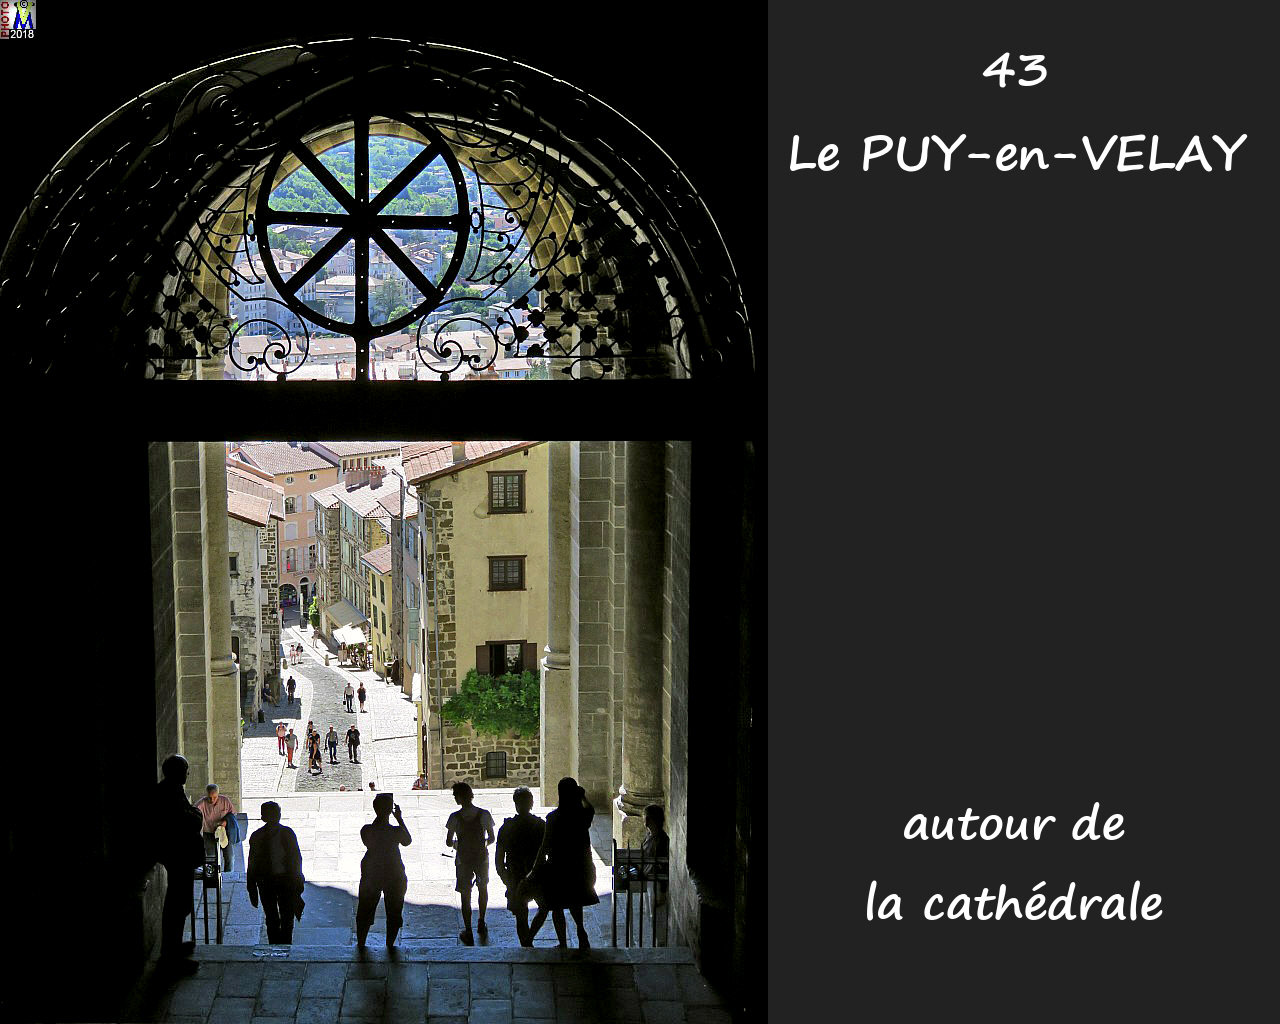 43PUY-EN-VELAY_cathedrale_418.jpg